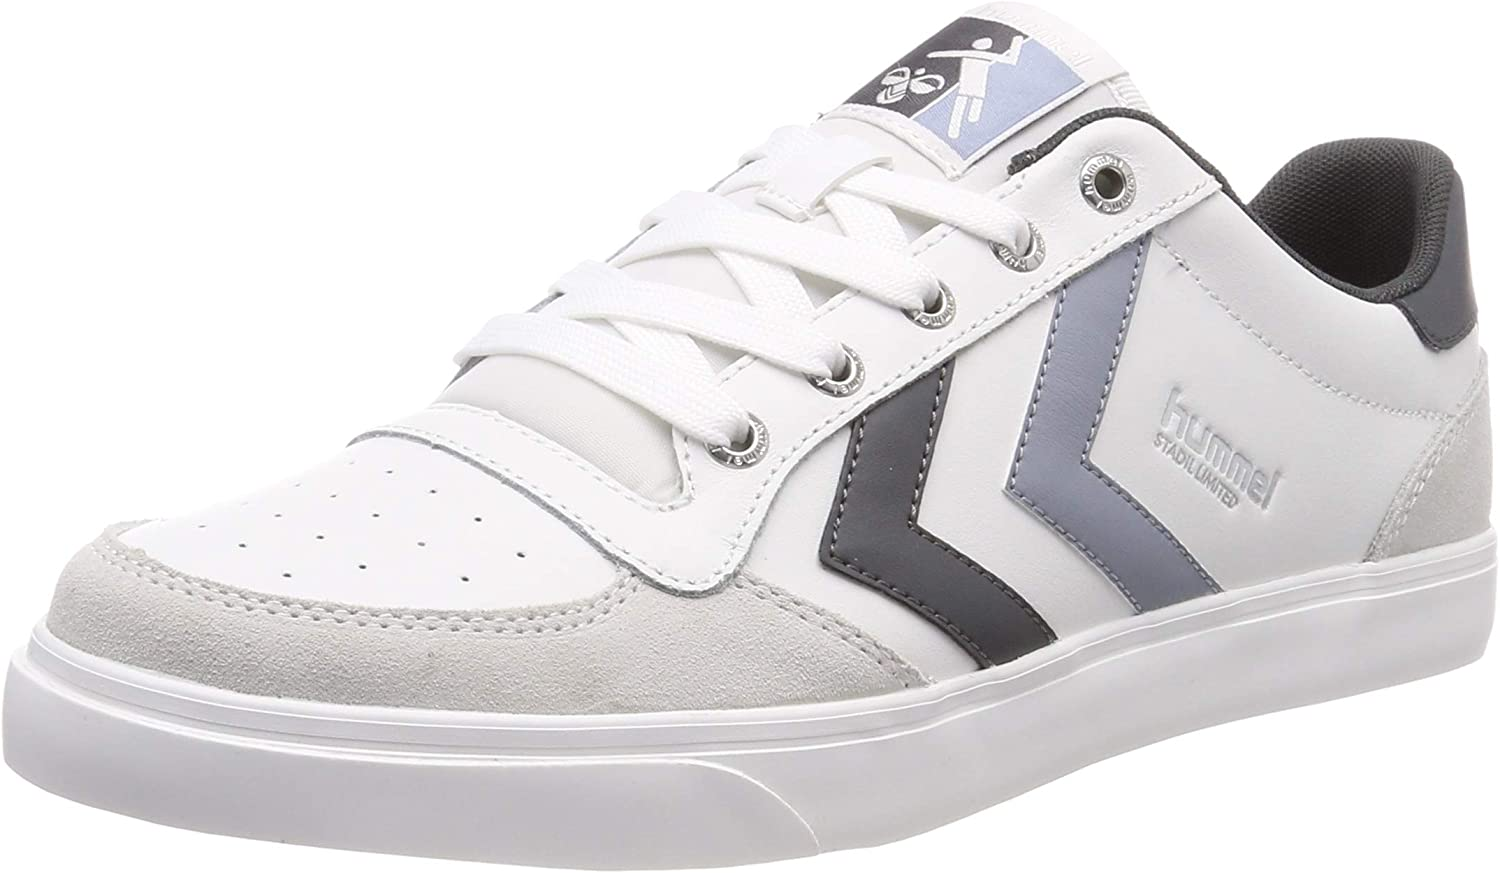 Hummel Adults' Stadil Low-Top Sneakers